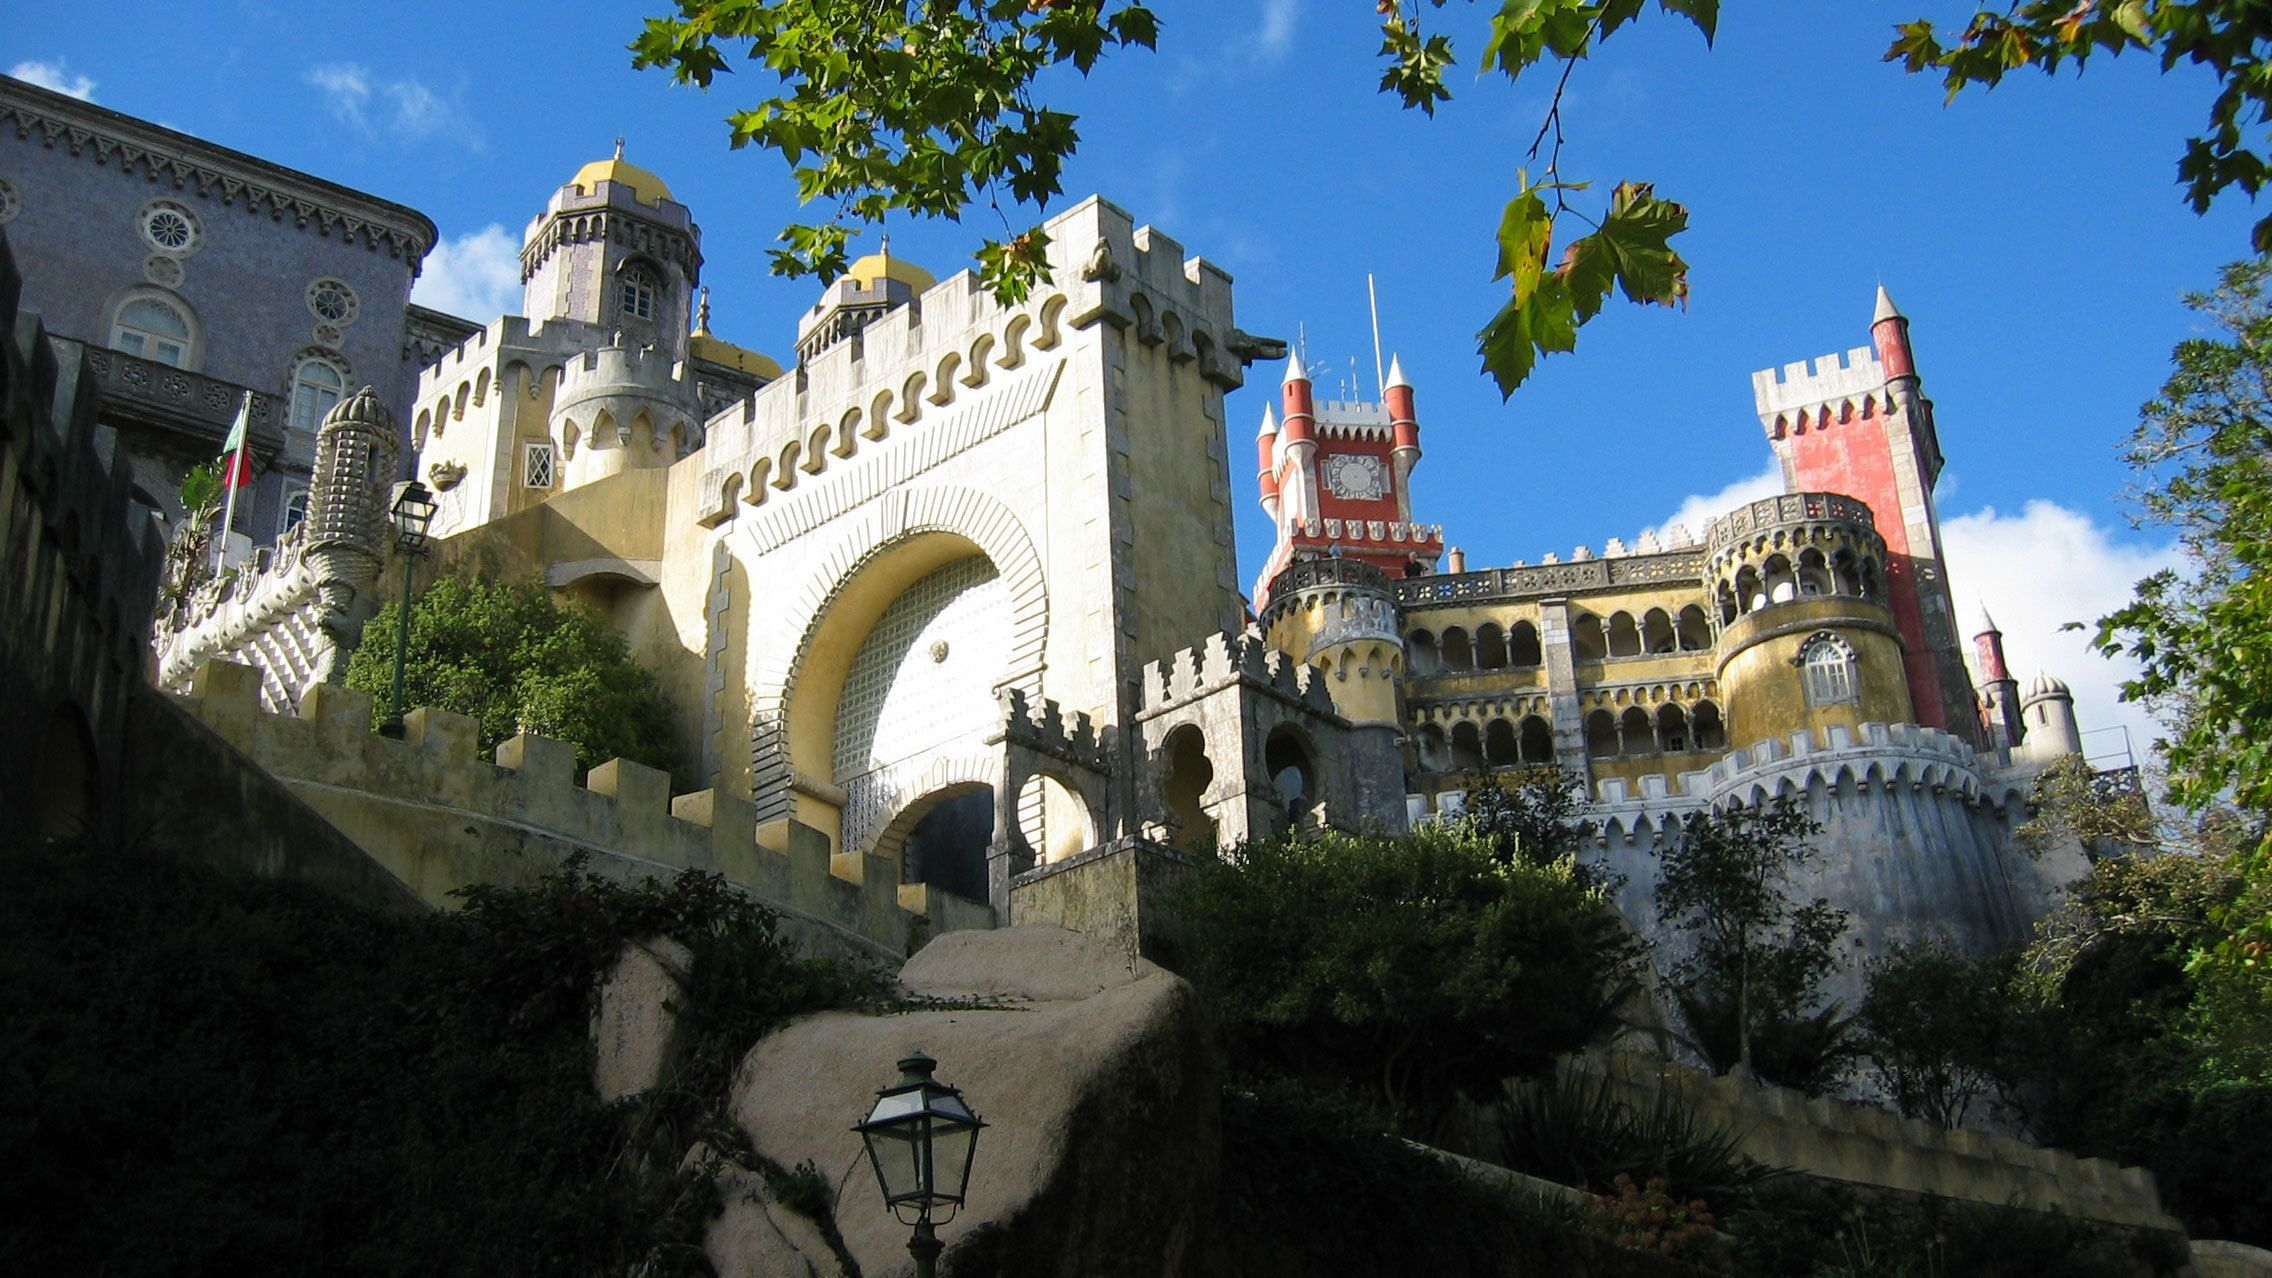 Colorful Pena National Palace in Sintra